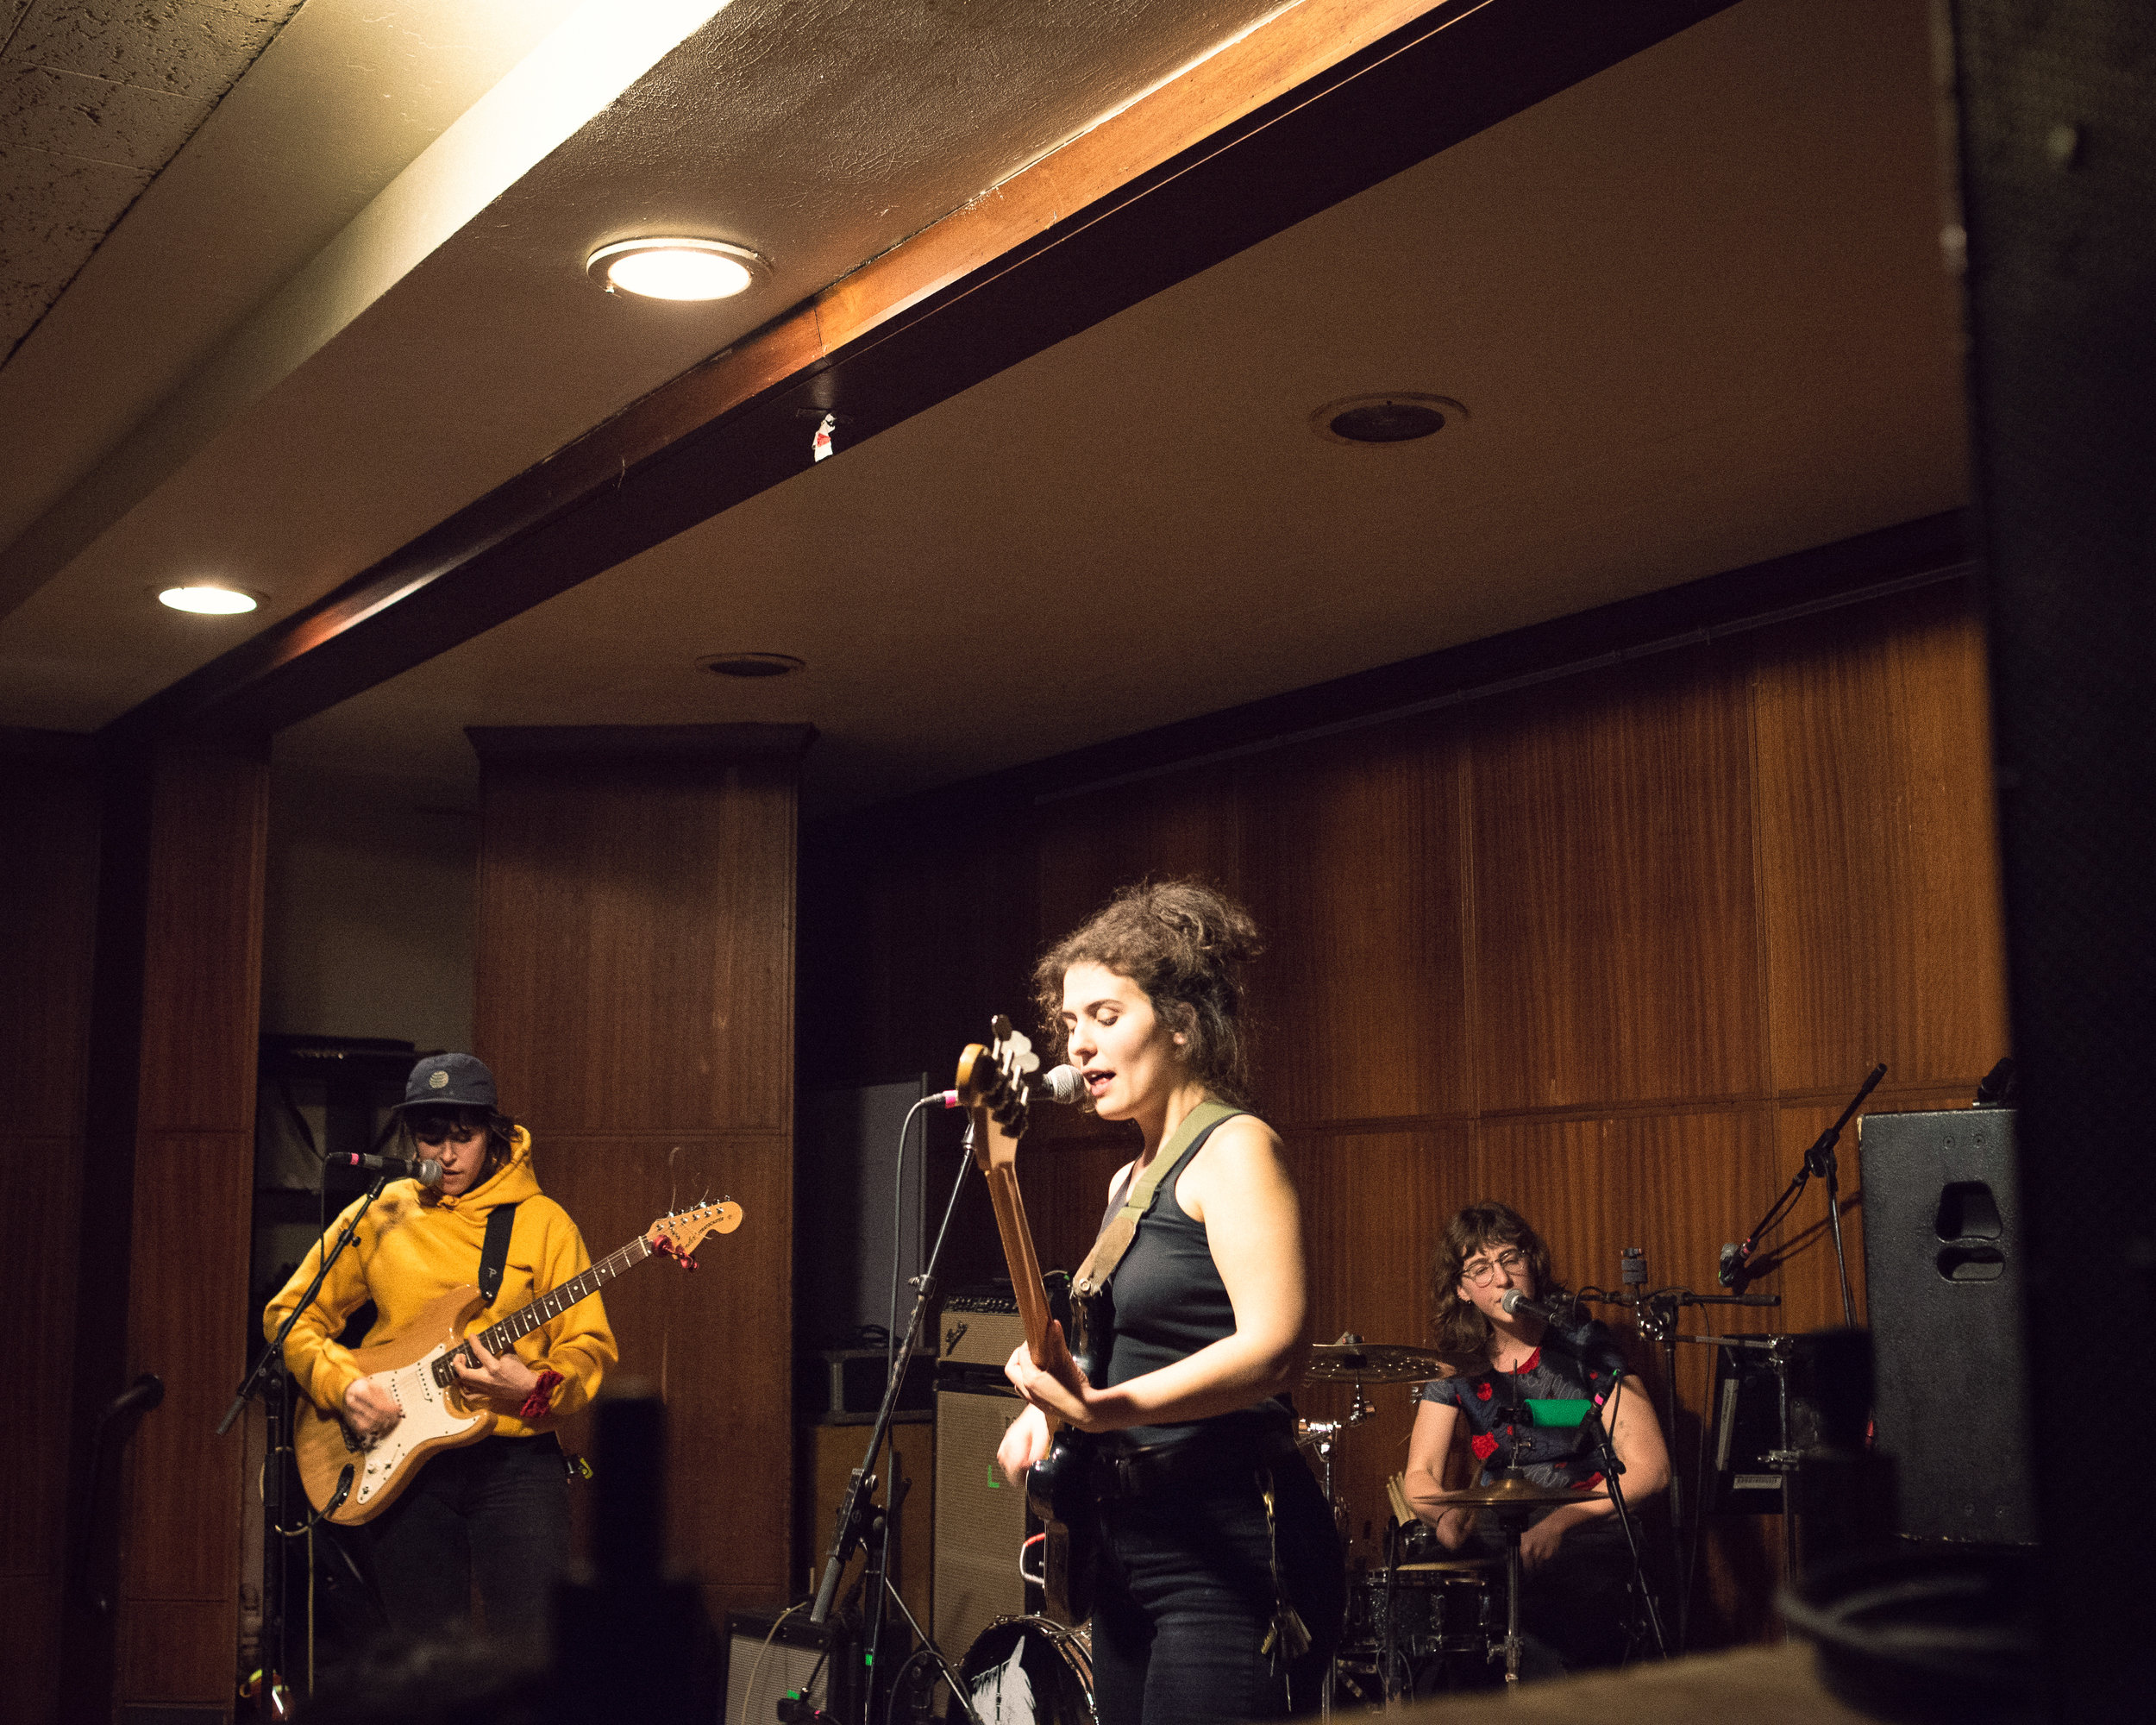 Palberta at the First Unitarian Church